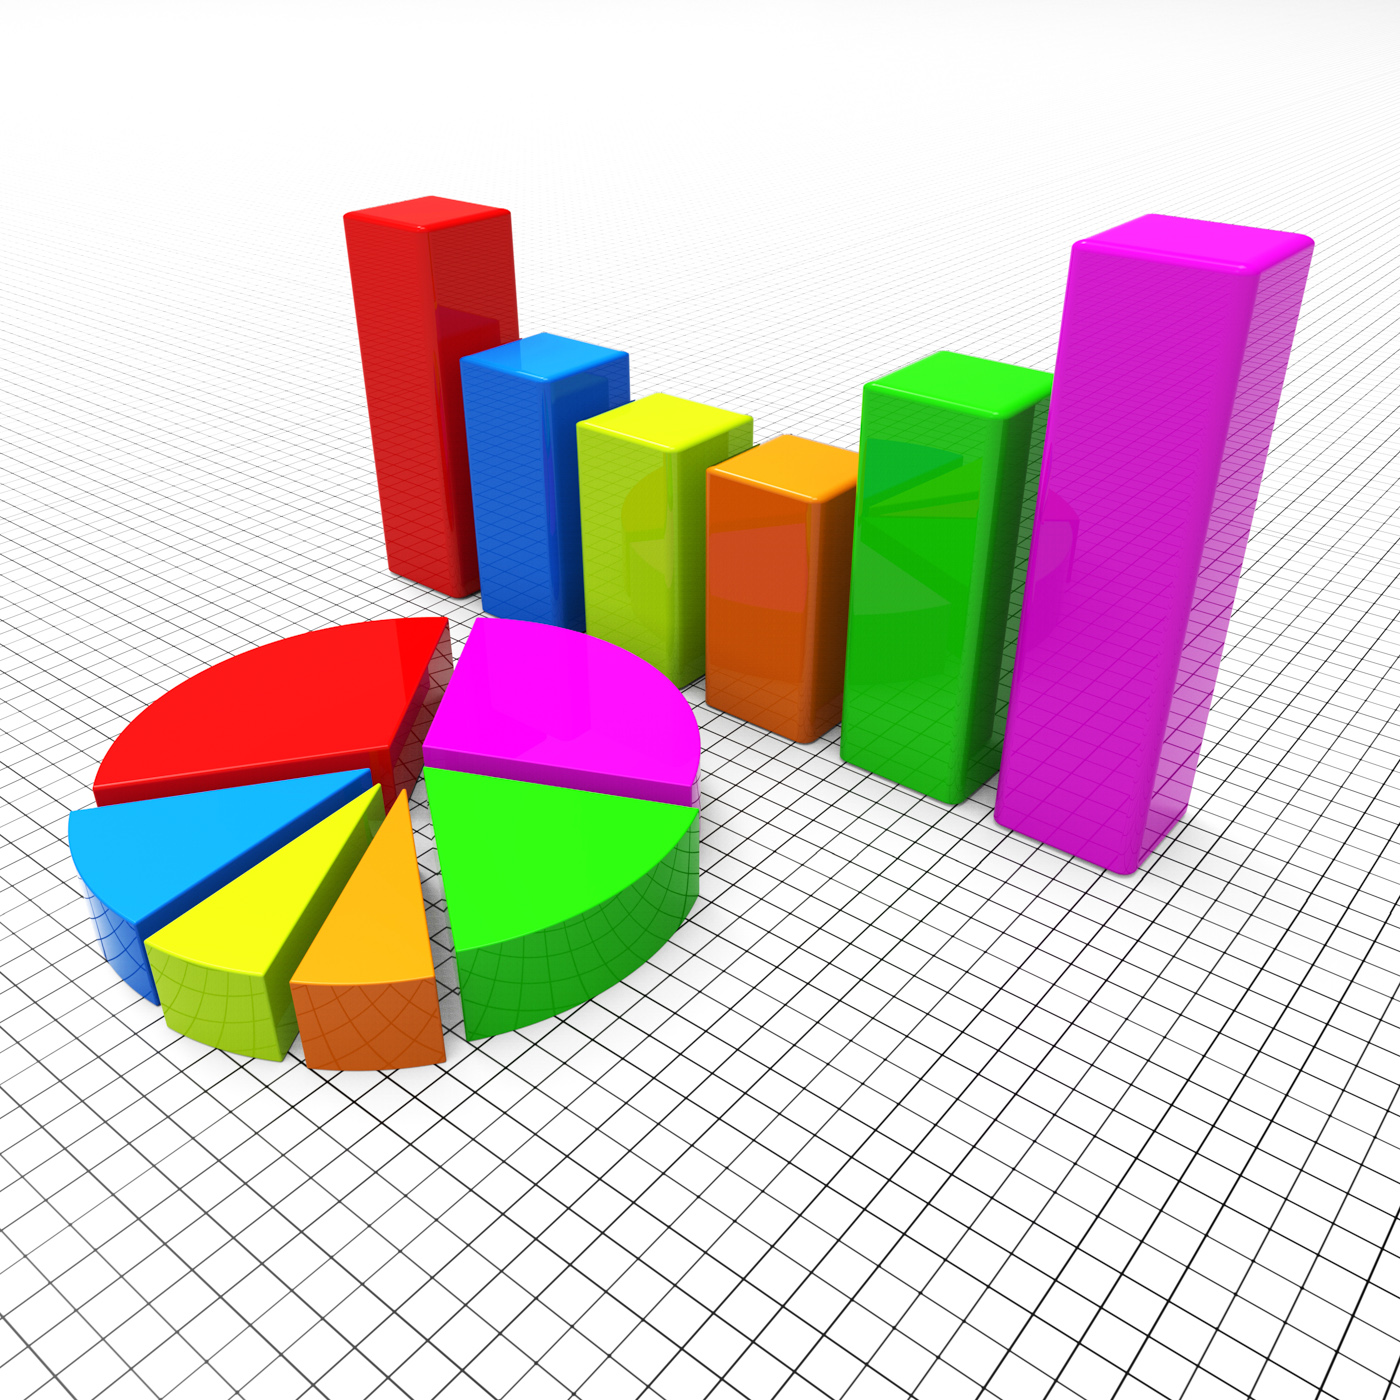 Pie Chart Shows Business Graph And Charting, Businessgraph, Statistics, Statistical, Statistic, HQ Photo